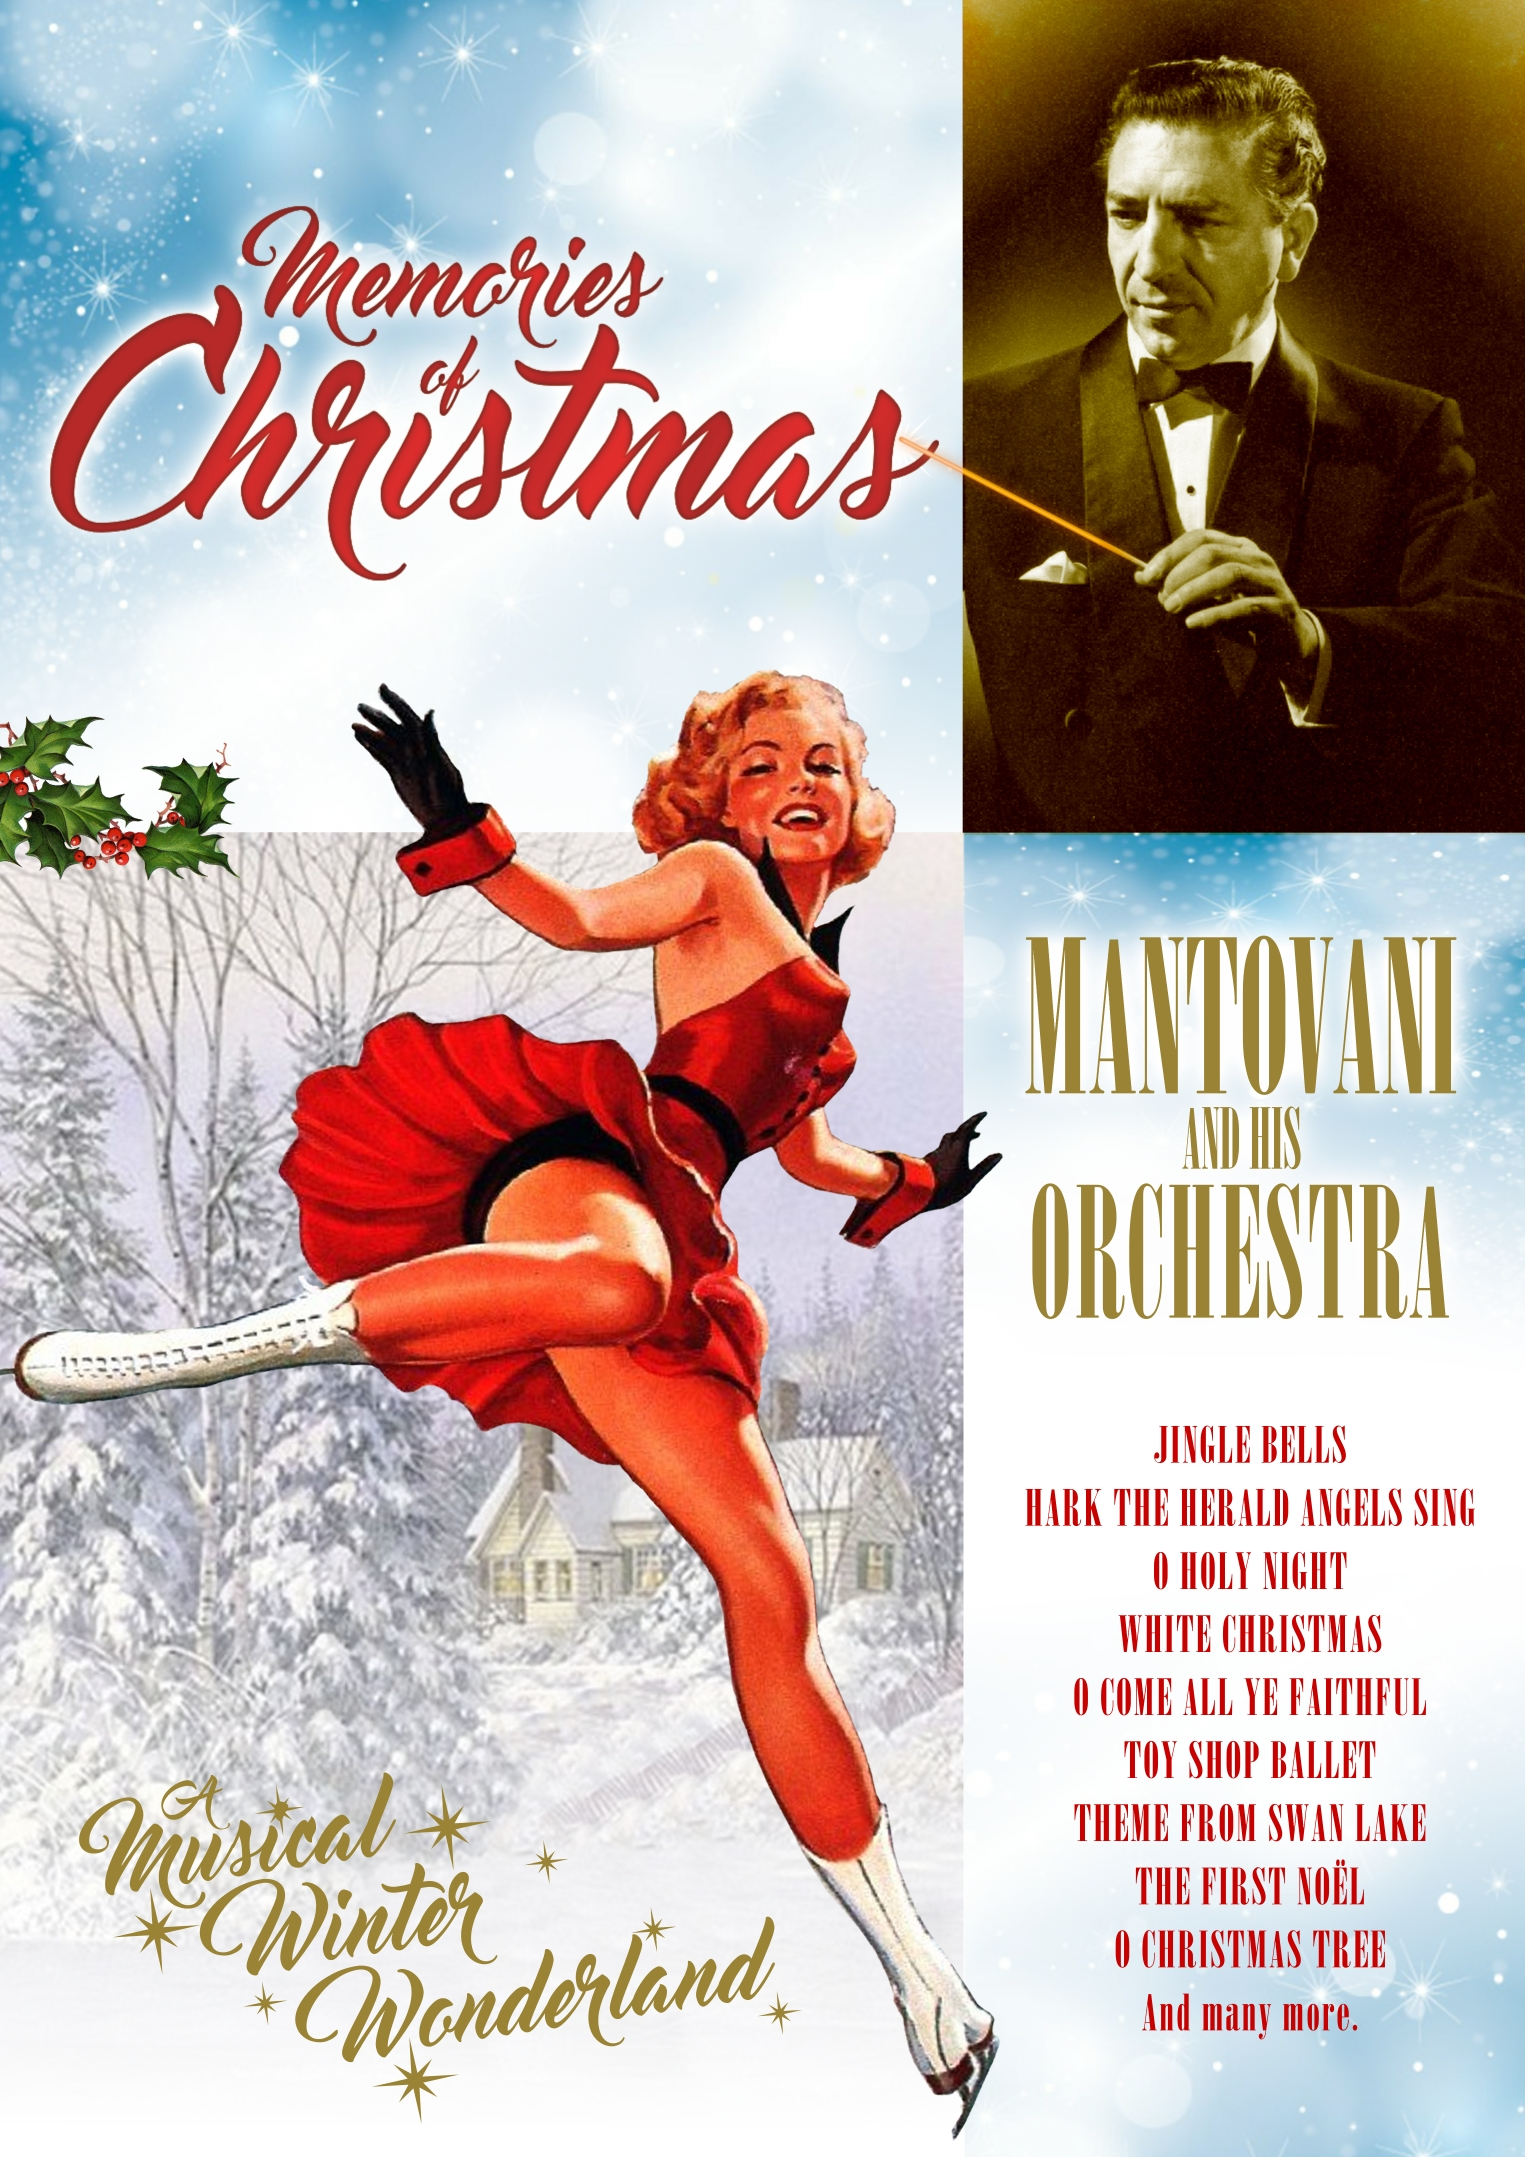 Memories of Christmas - Mantovani and his Orchestra